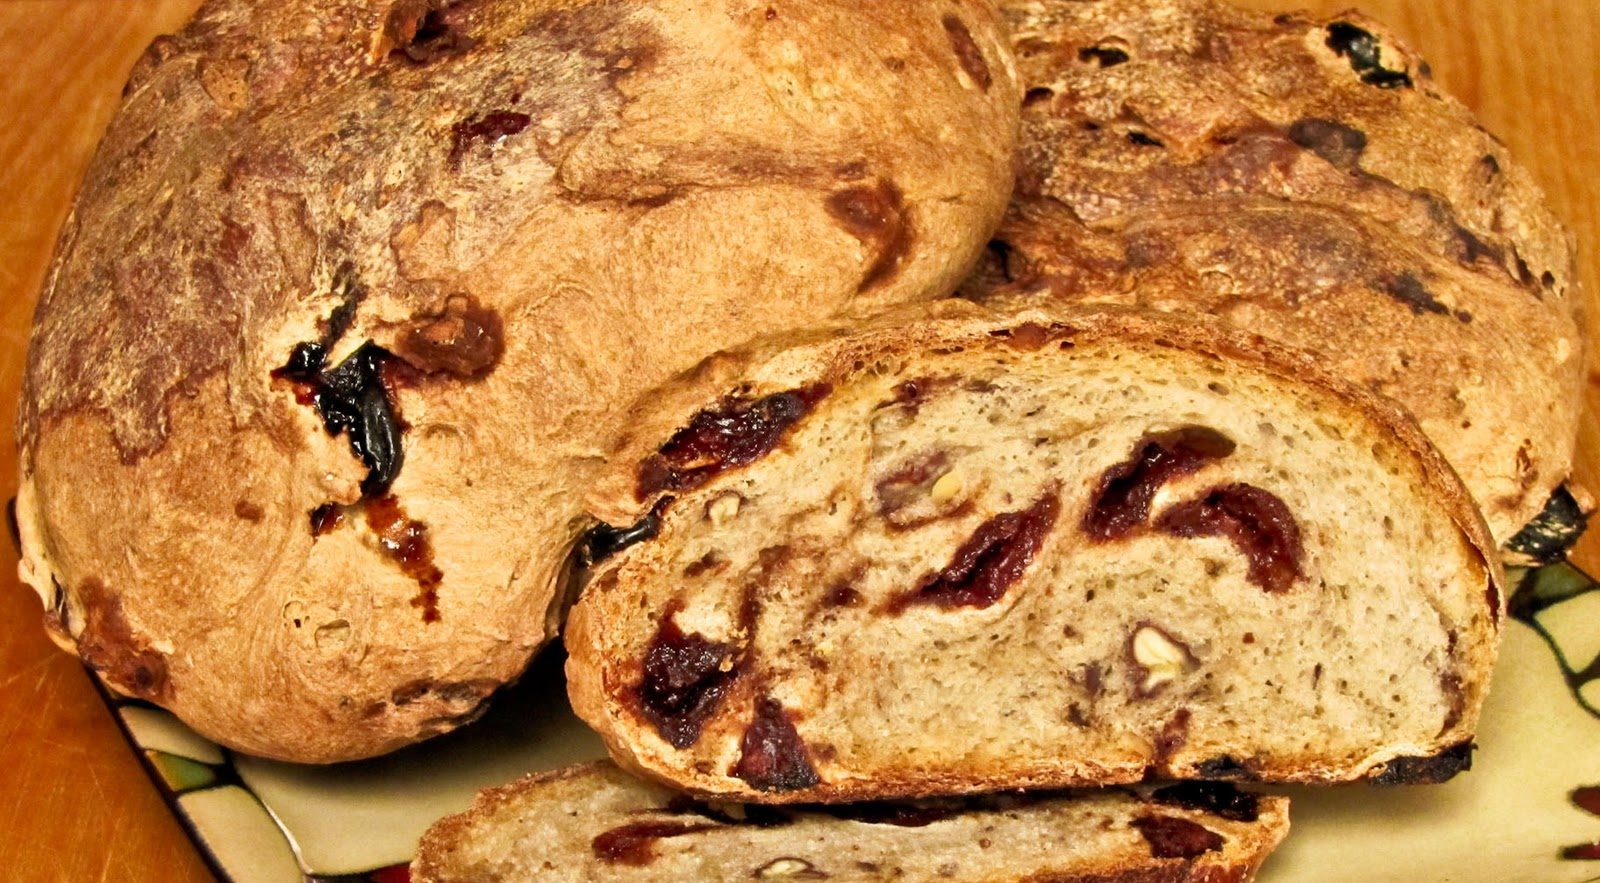 OnTheMove-In the Galley: Sour Cherry Lemon Sourdough Bread ...